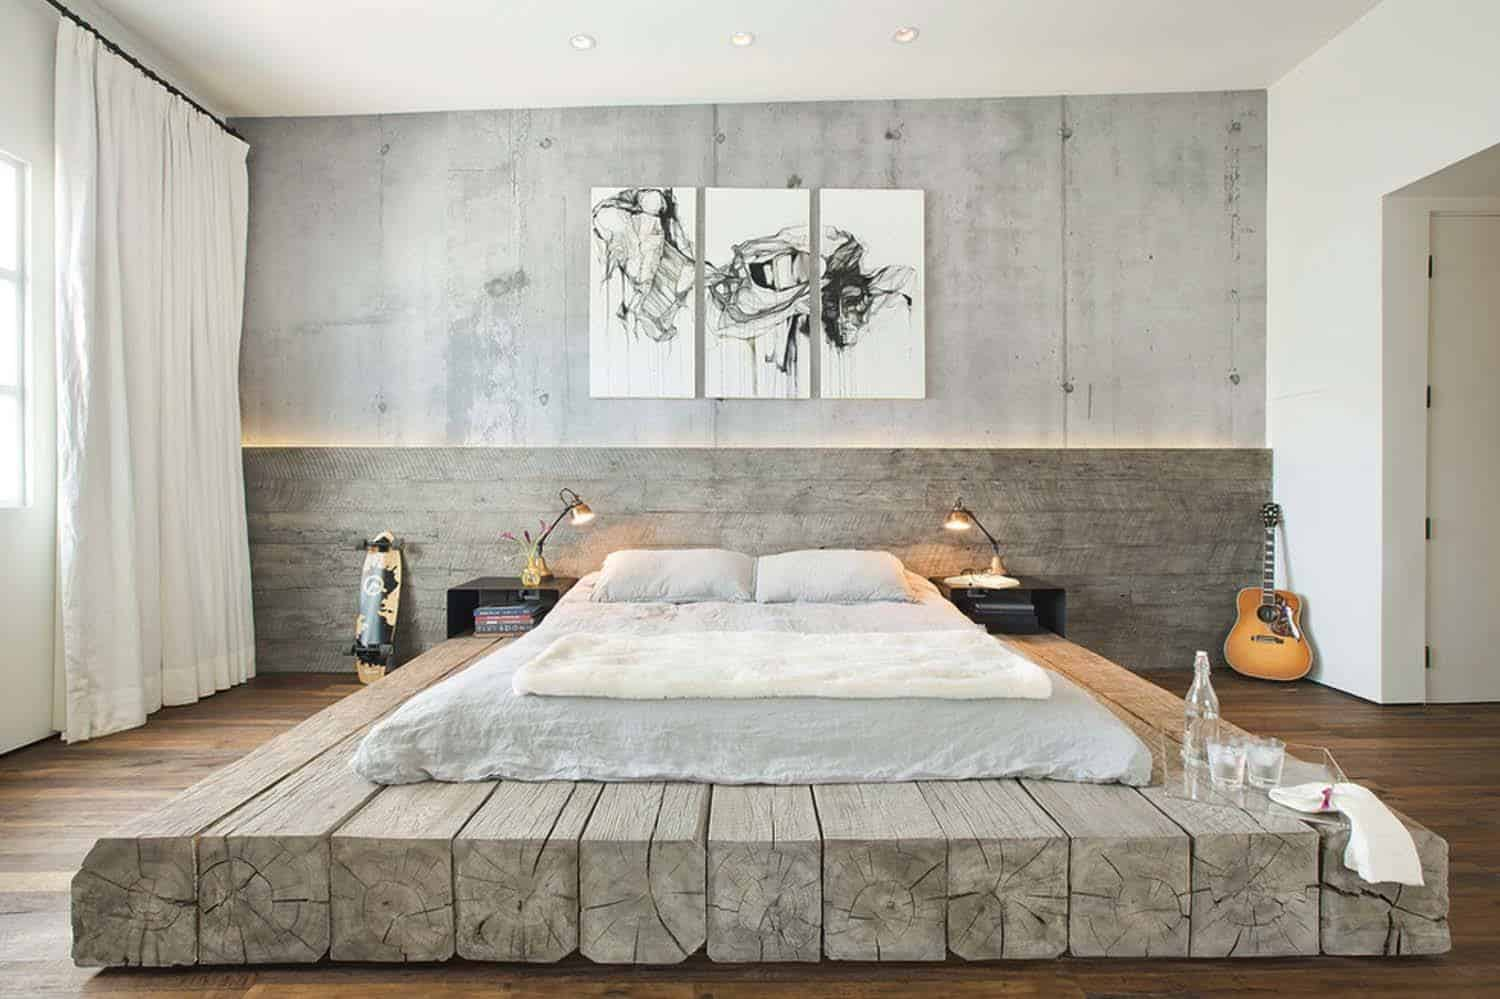 Industrial Style Bedroom Design Ideas-05-1 Kindesign